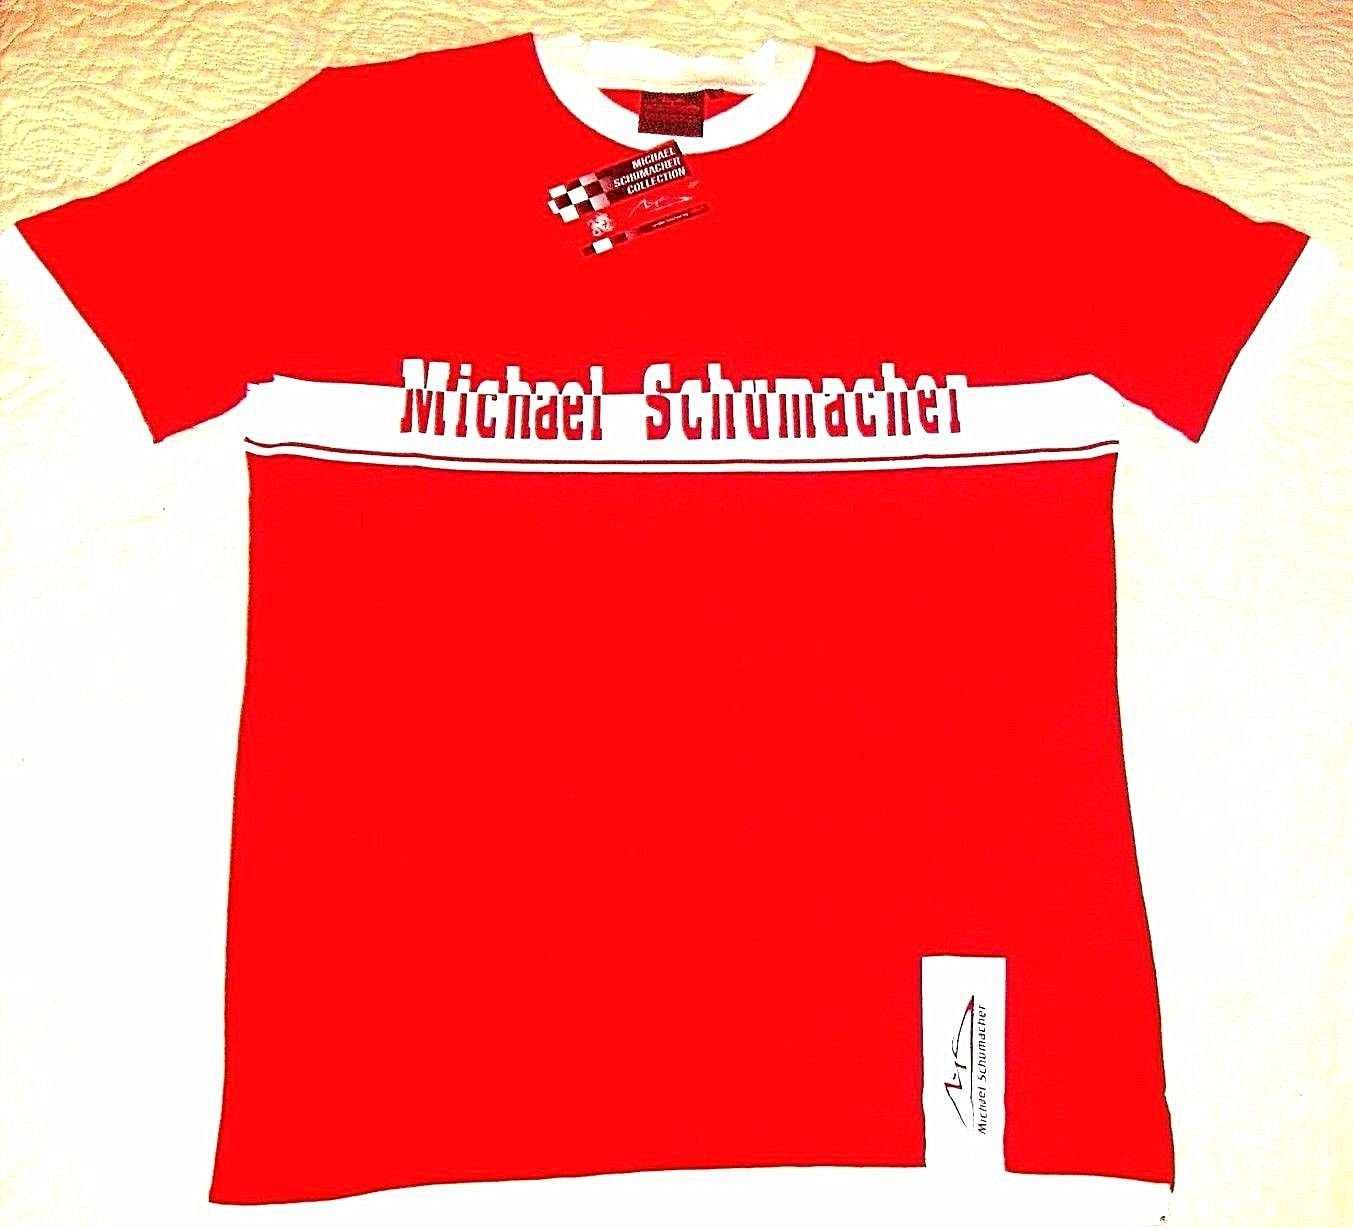 MICHAEL SCHUMACHER T-SHIRT, WITH LETTERING & LOGO RED/WHITE SIZE L- LARGE , NEW